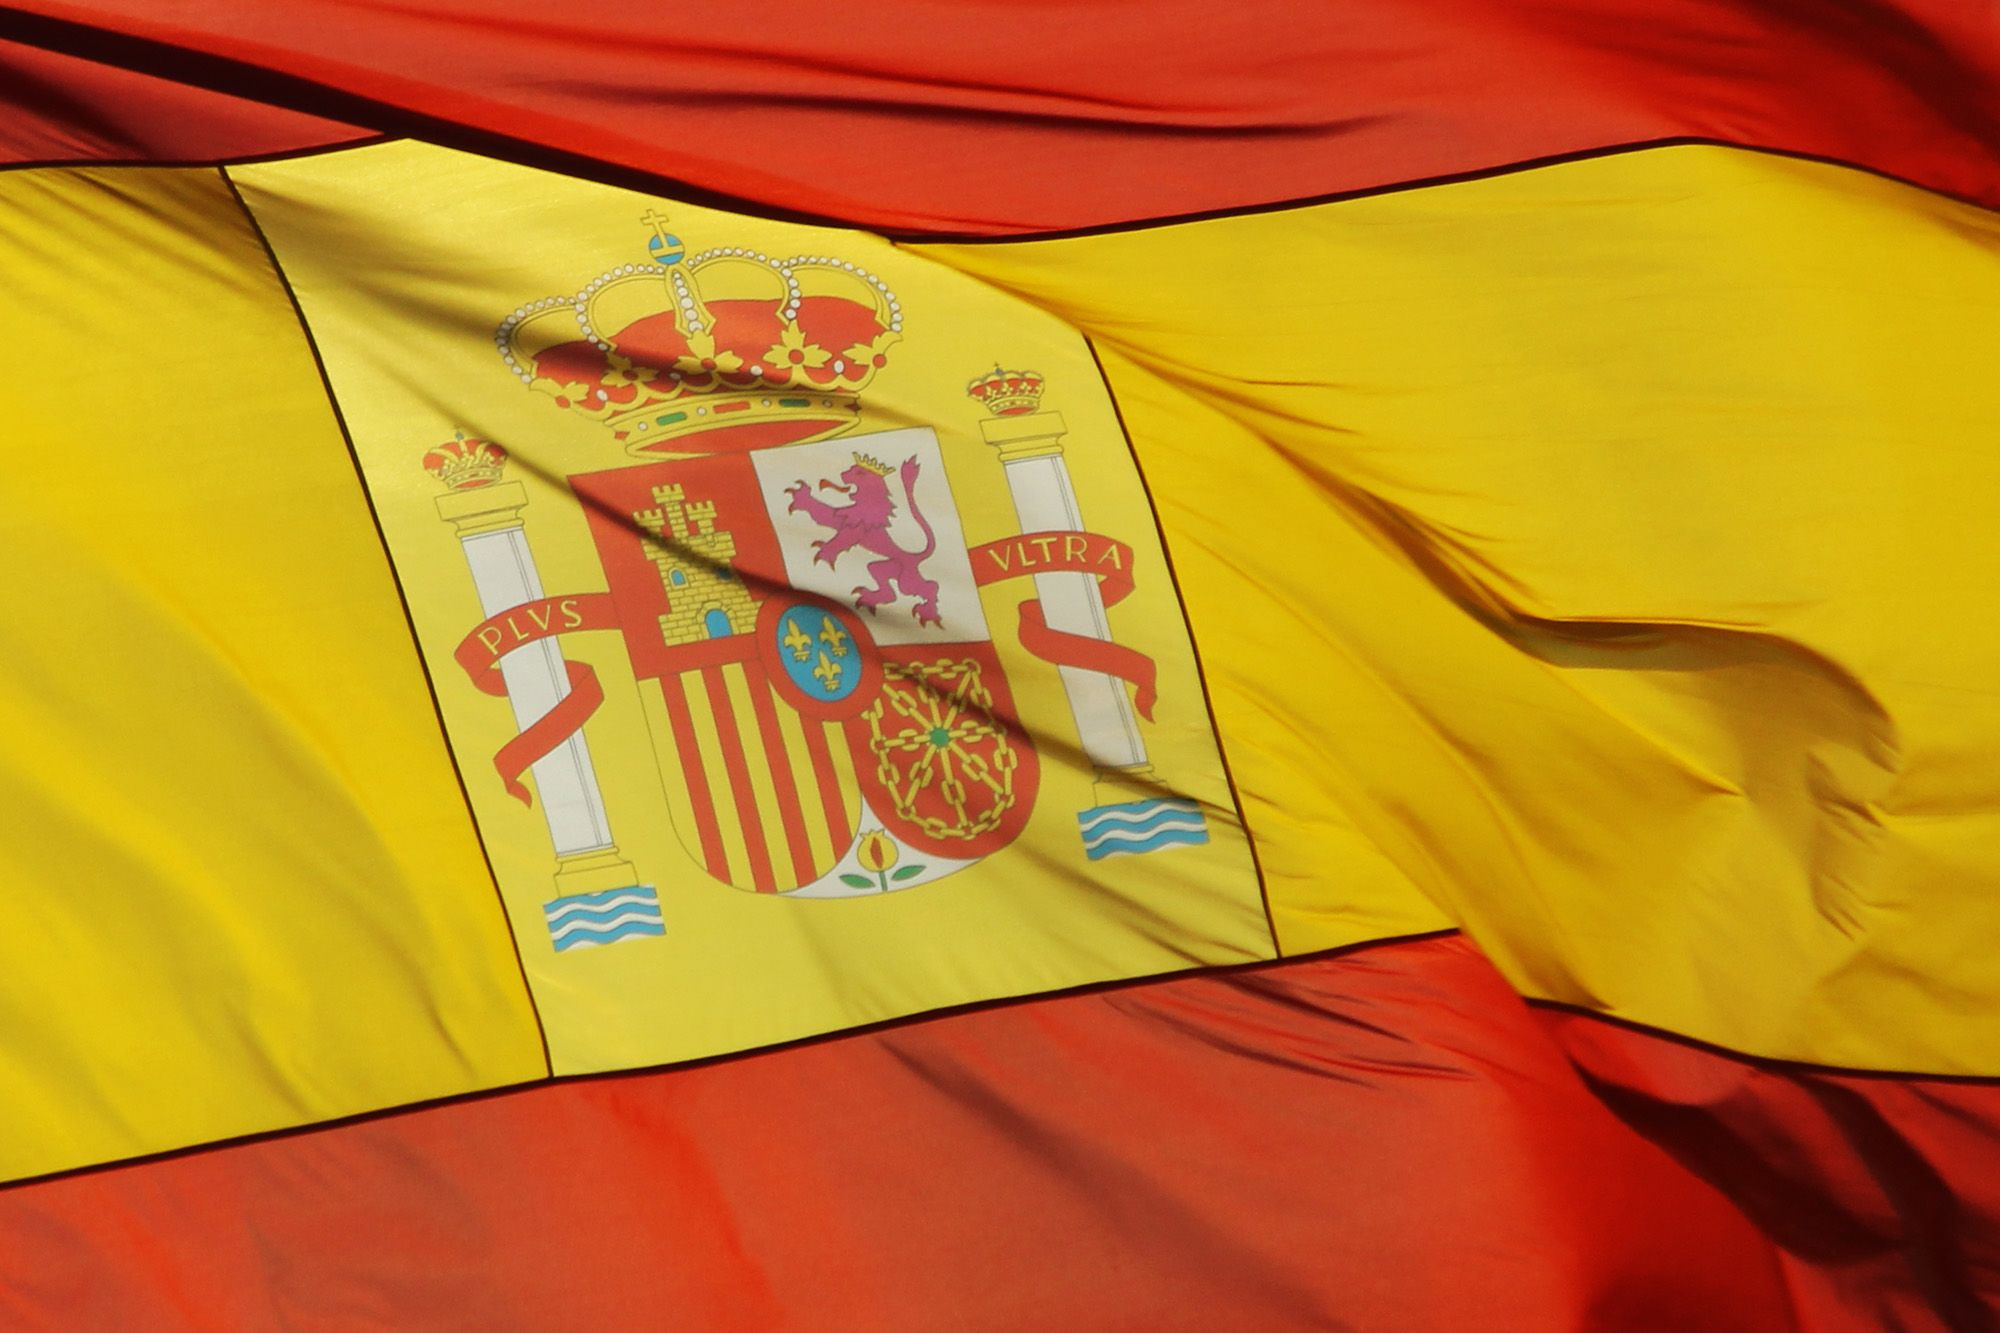 Spanish flag. Courtesy of Elentir under a Creative Commons license.